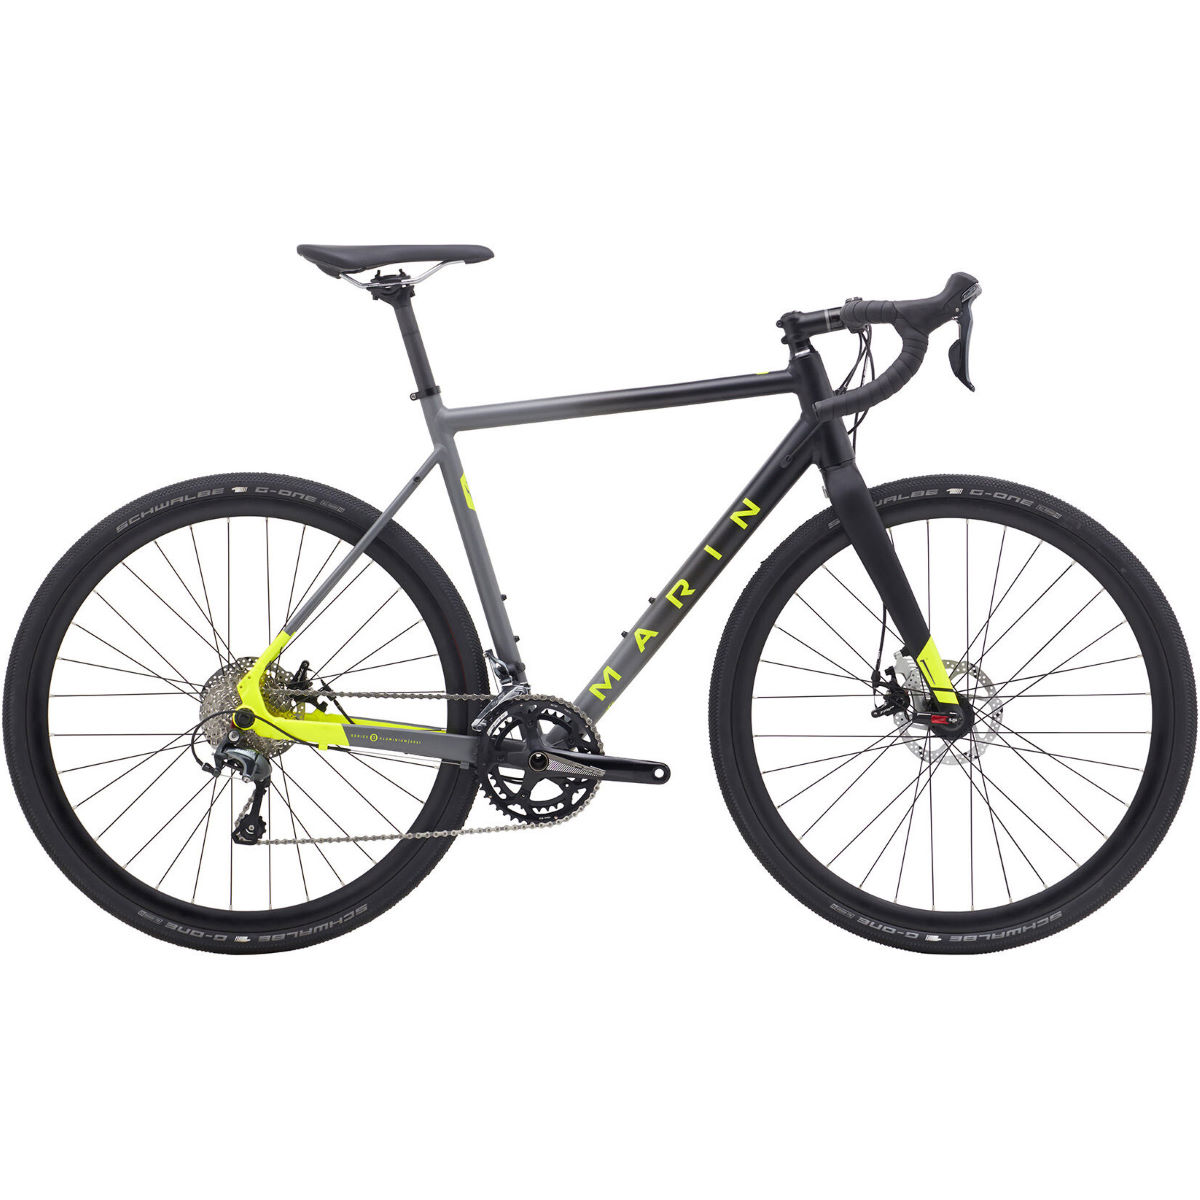 Image of Vélo de cyclo-cross Marin Cortina AX1 (2019) - 54cm Noir/Gris